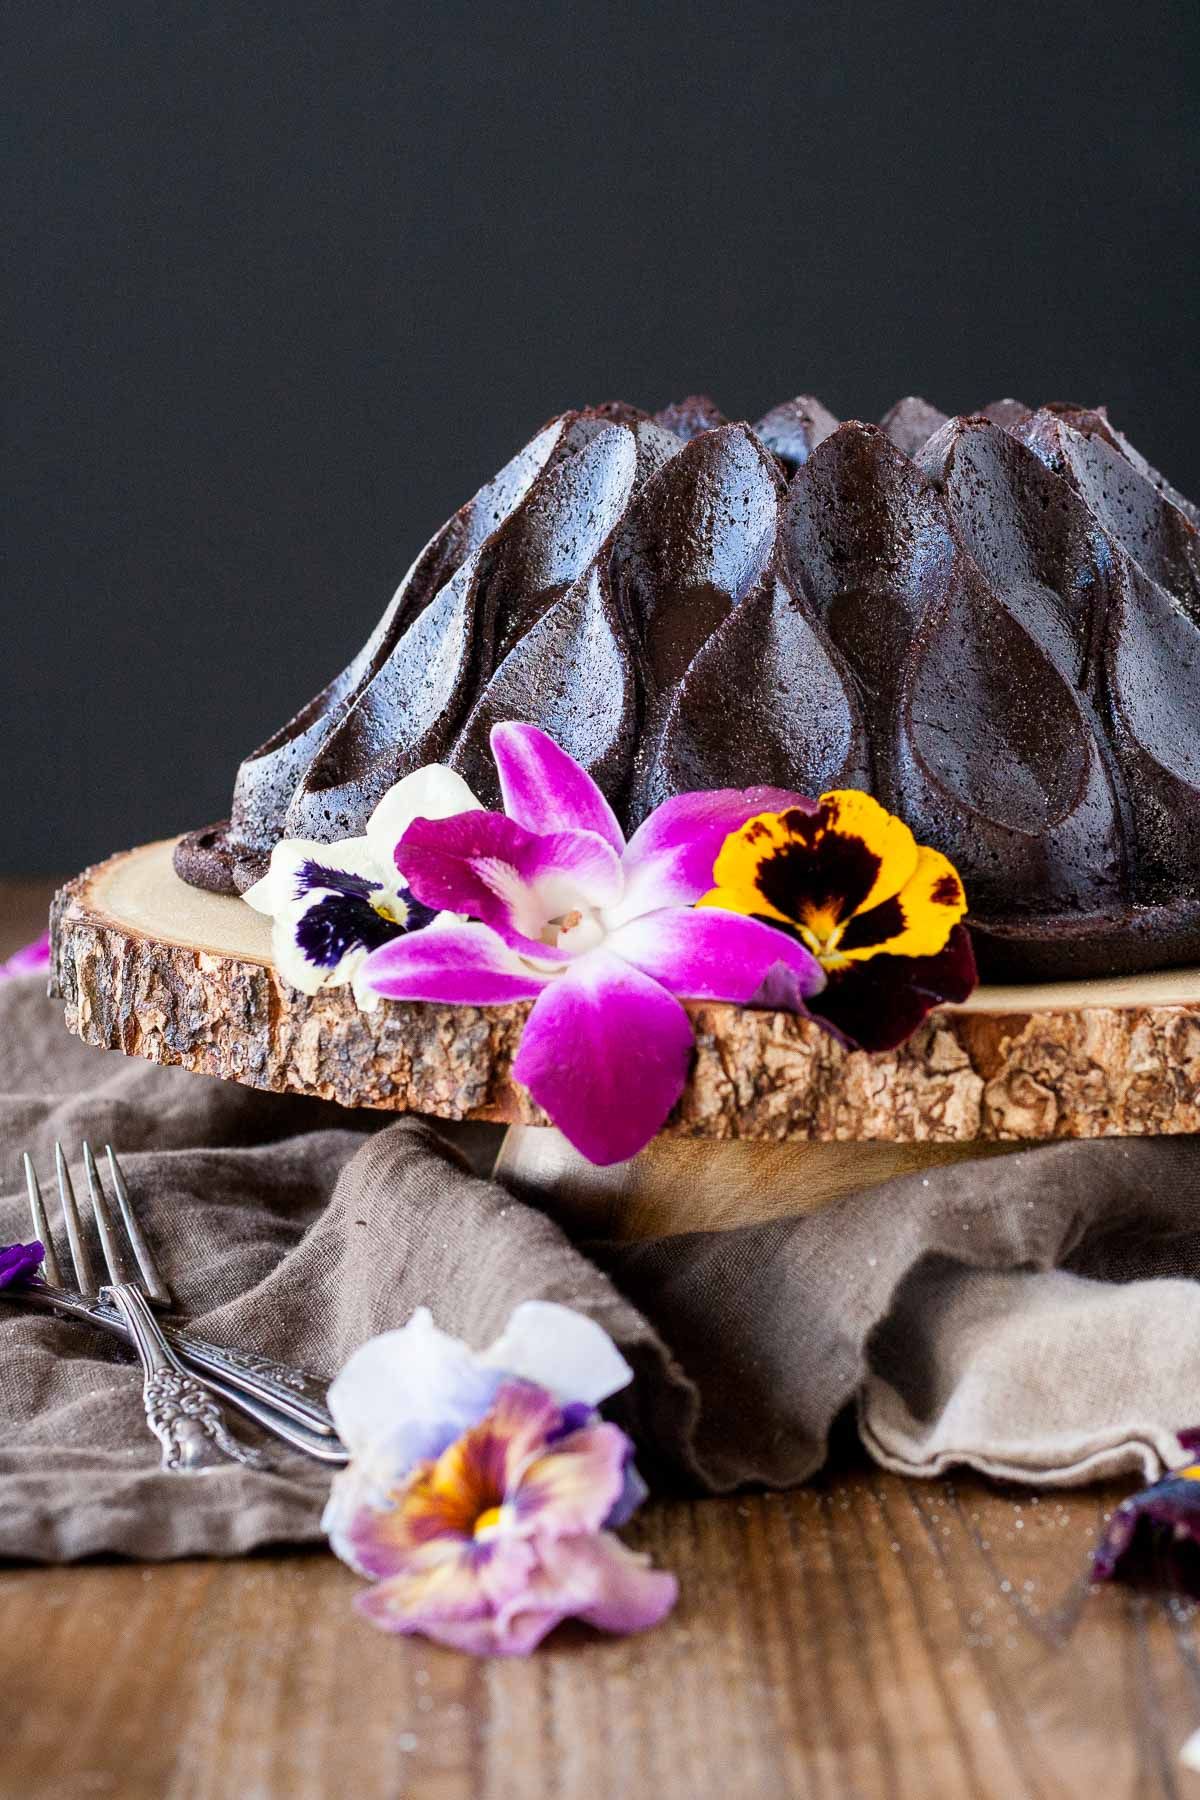 Chocolate Bundt cake on a wooden cake stand garnished with fresh edible flowers.